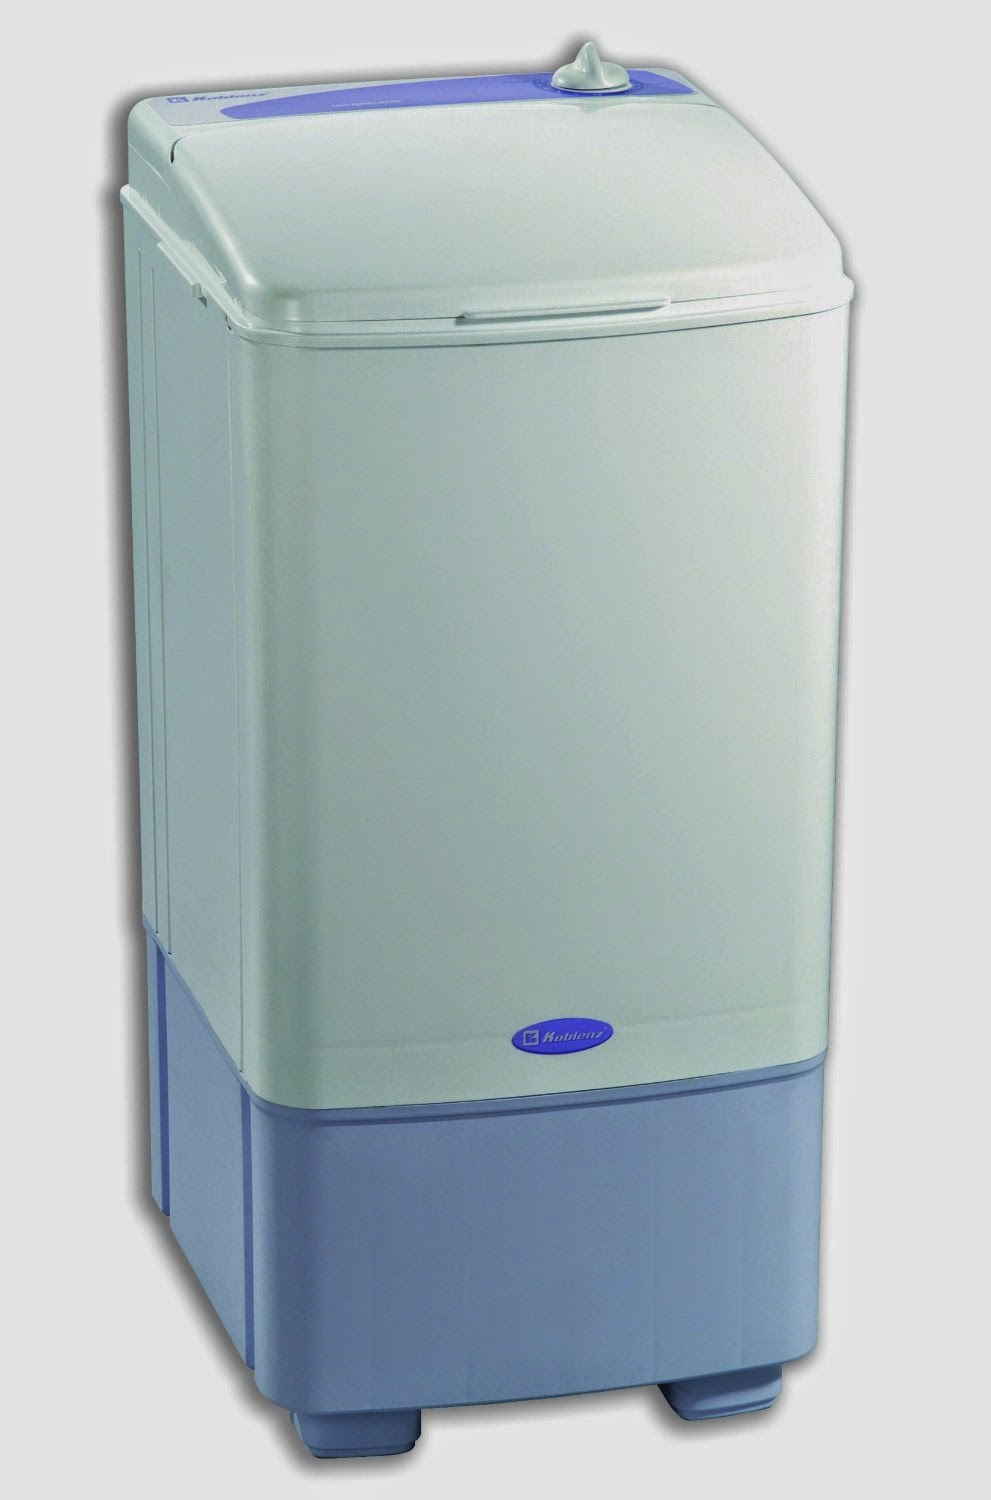 Best washer dryer combo best portable washer dryer combo for Portable washer and dryer